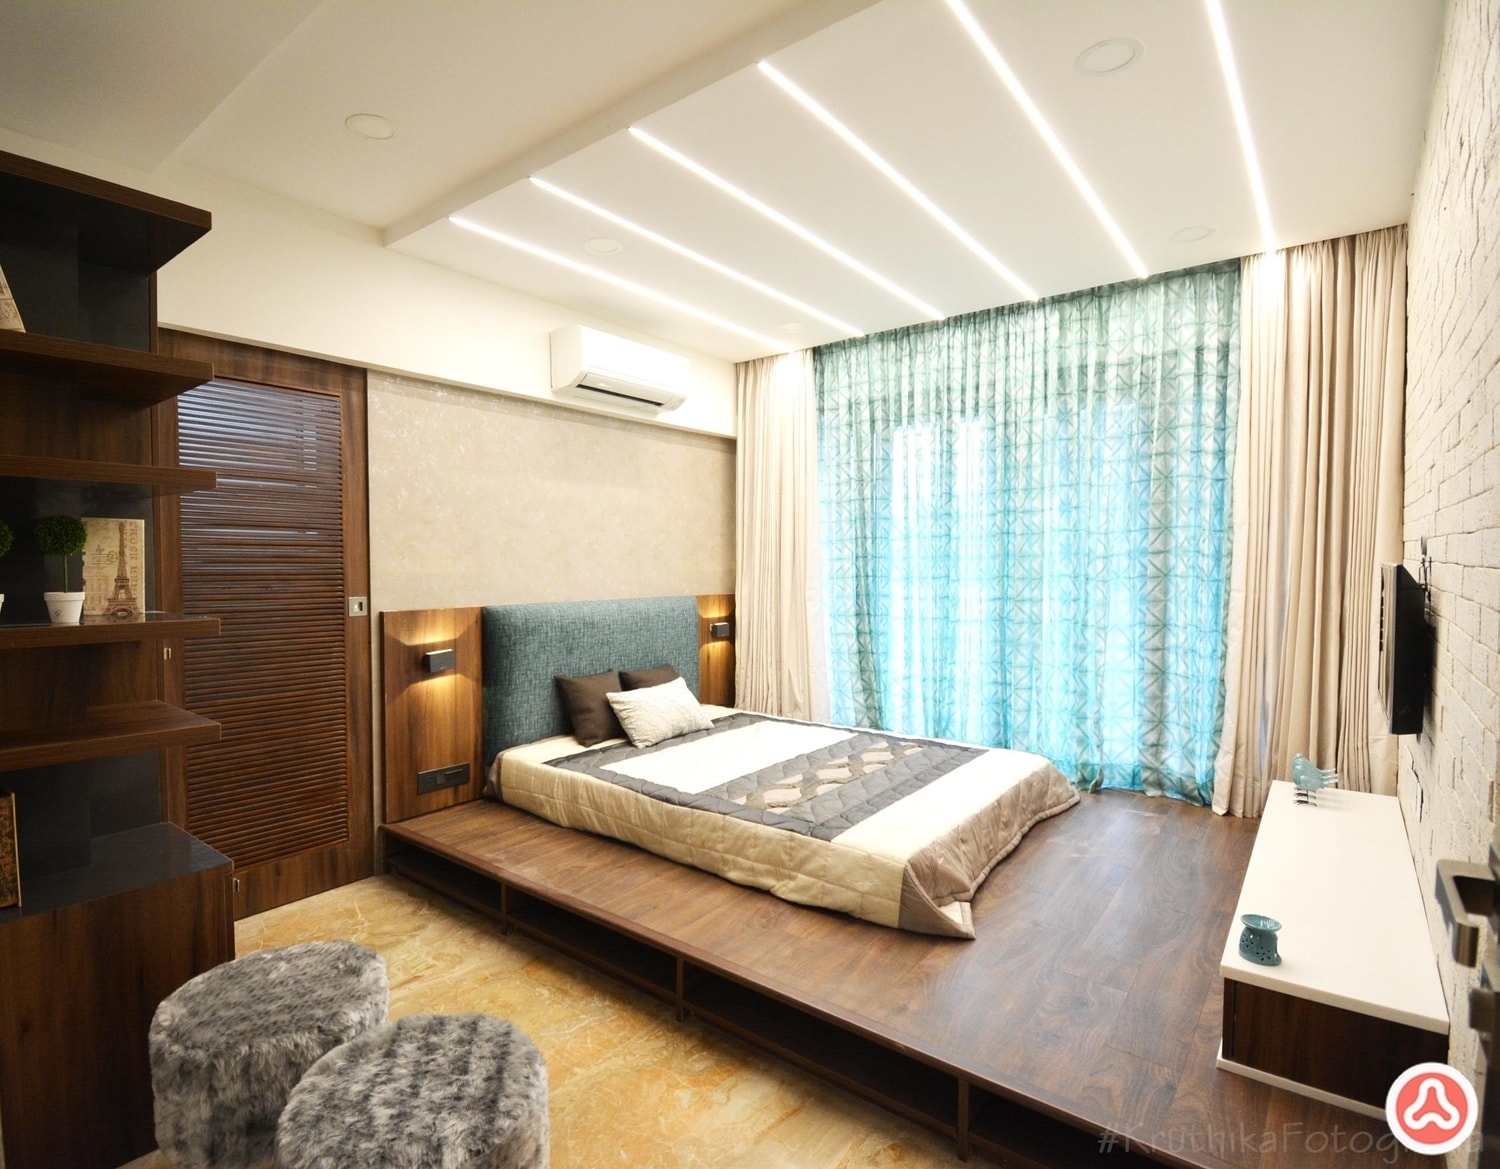 Apartment bedroom interior design with strip lights in ceiling, and headboard in fabric